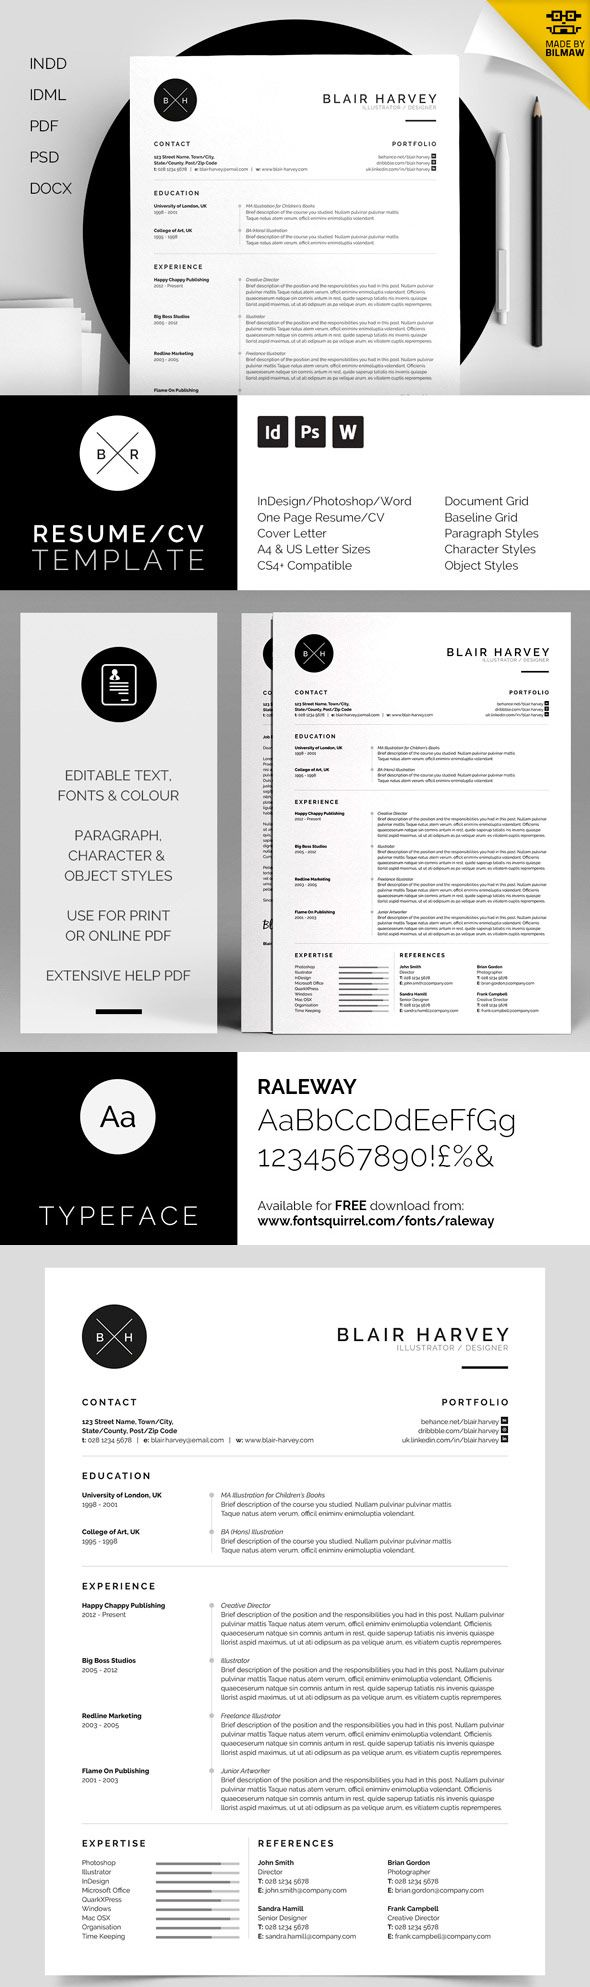 Creative Resume Styles - Maggi.Locustdesign.Co